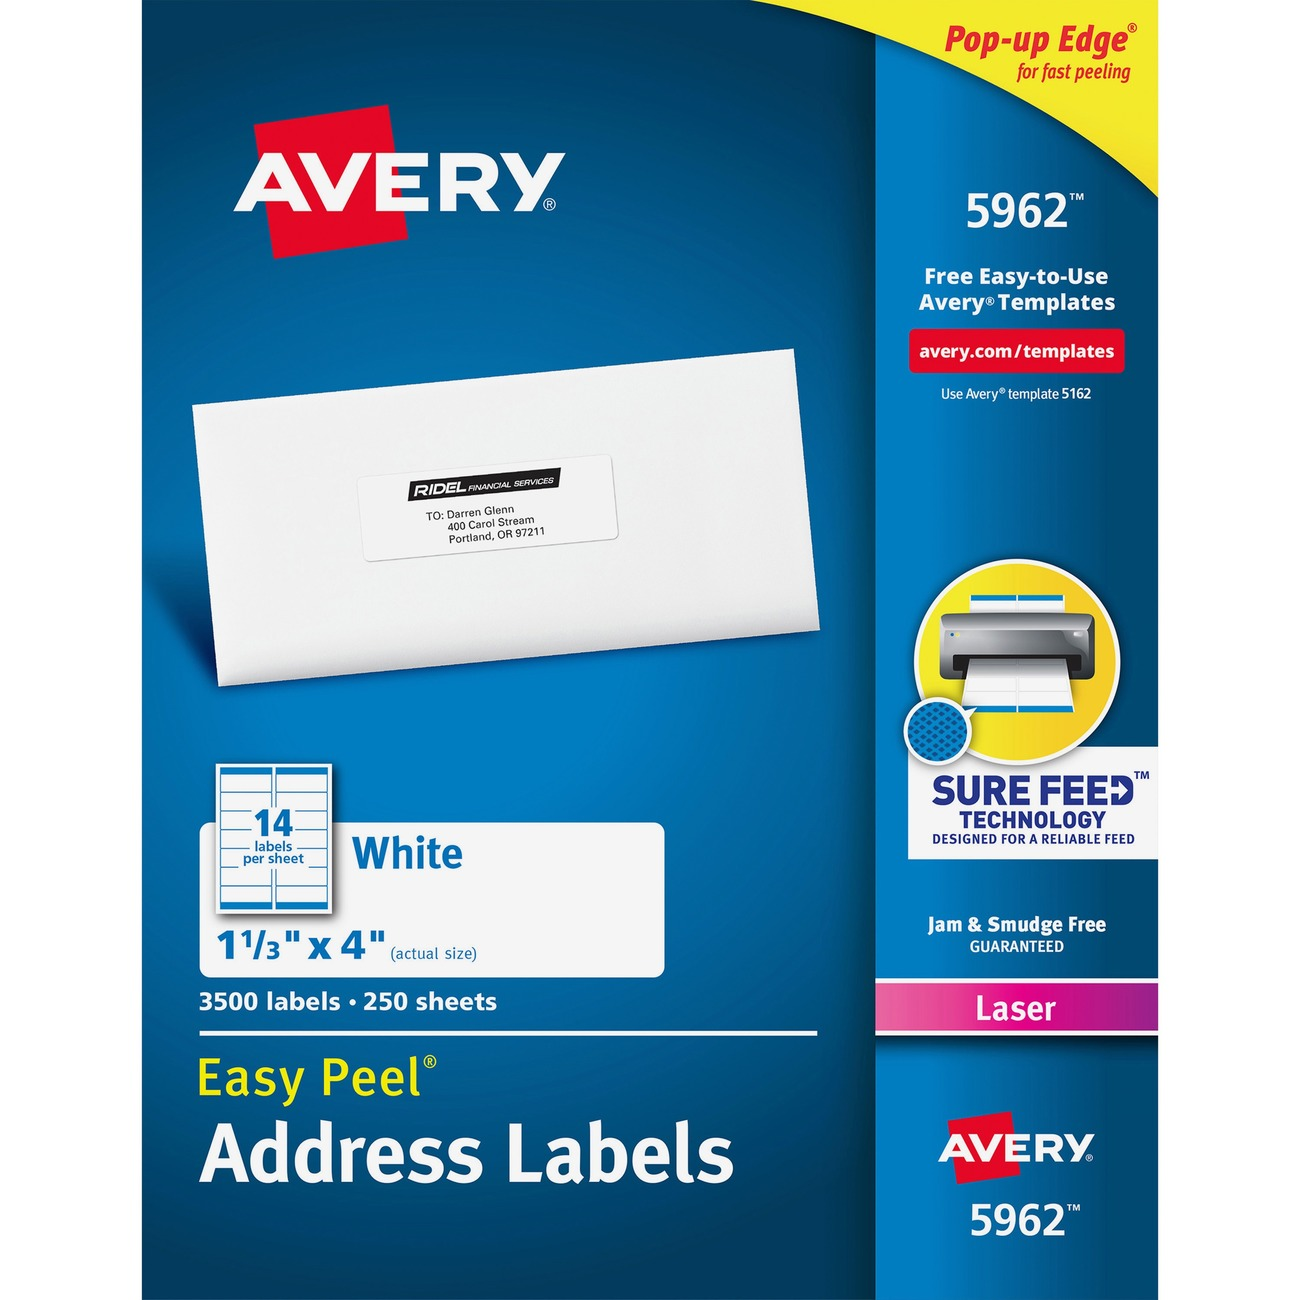 Printer for Avery 5962 template